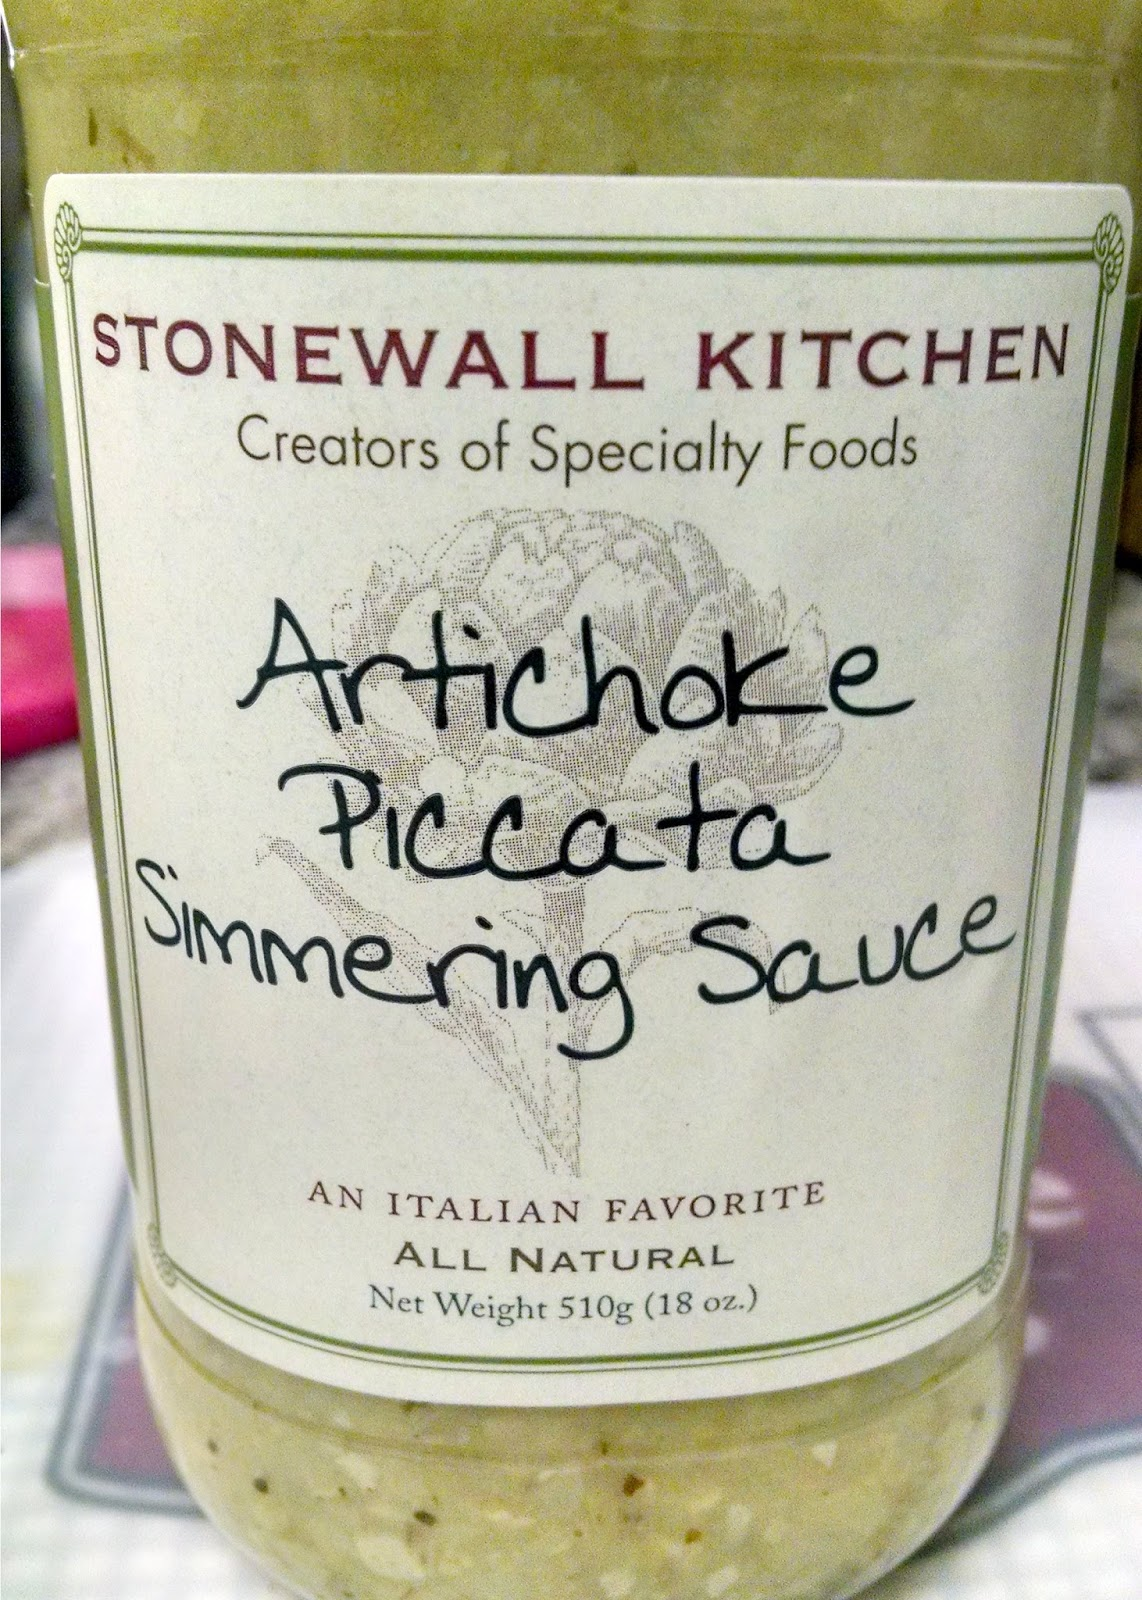 A Kitchen Hoor | Stonewal Kitchen Artichoke Piccata Simmering Sauce - Product Review